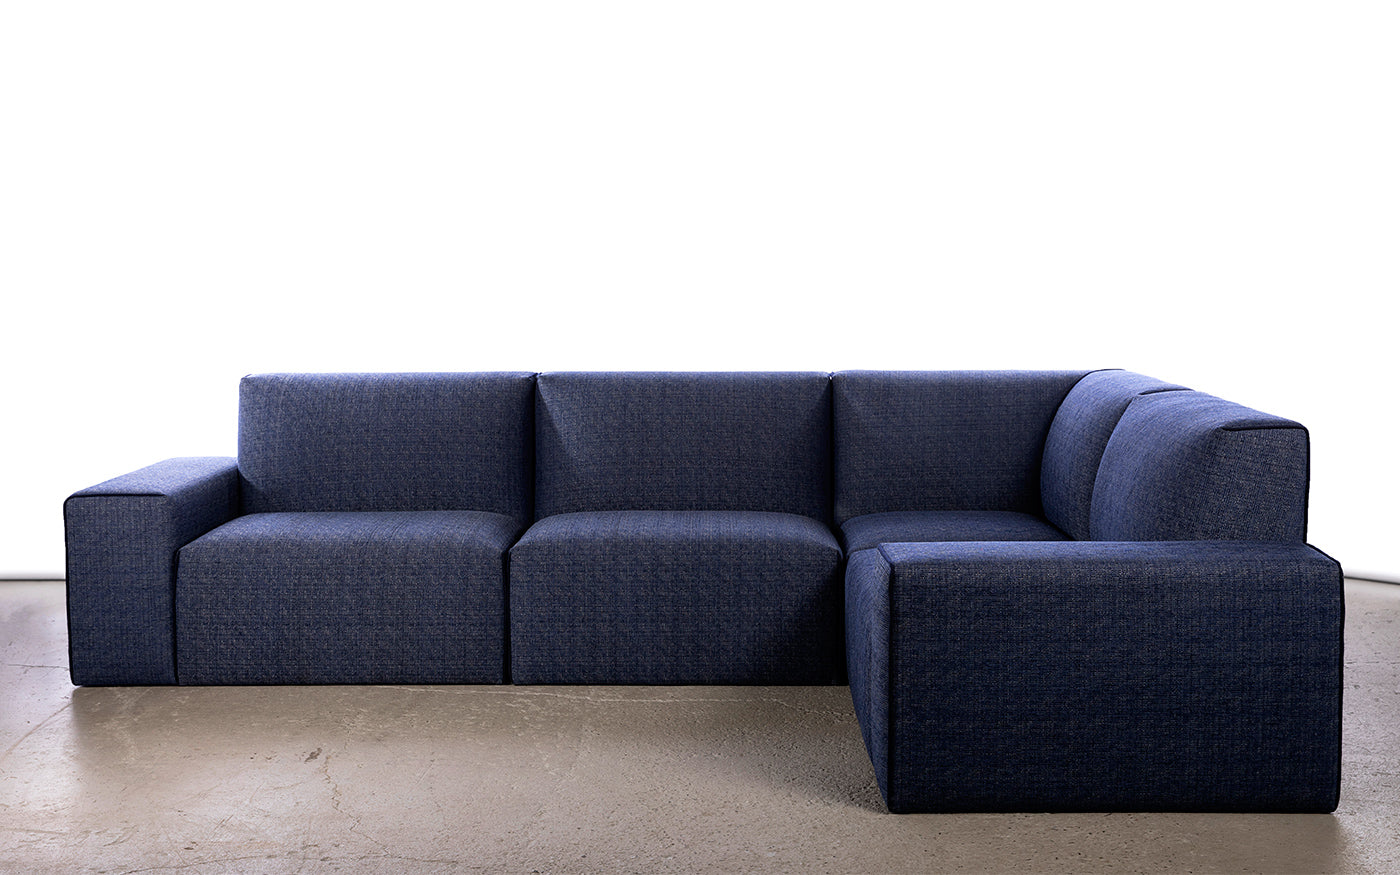 FFABB JUMBALOW LOW Modular sectional, 4 pcs sectional